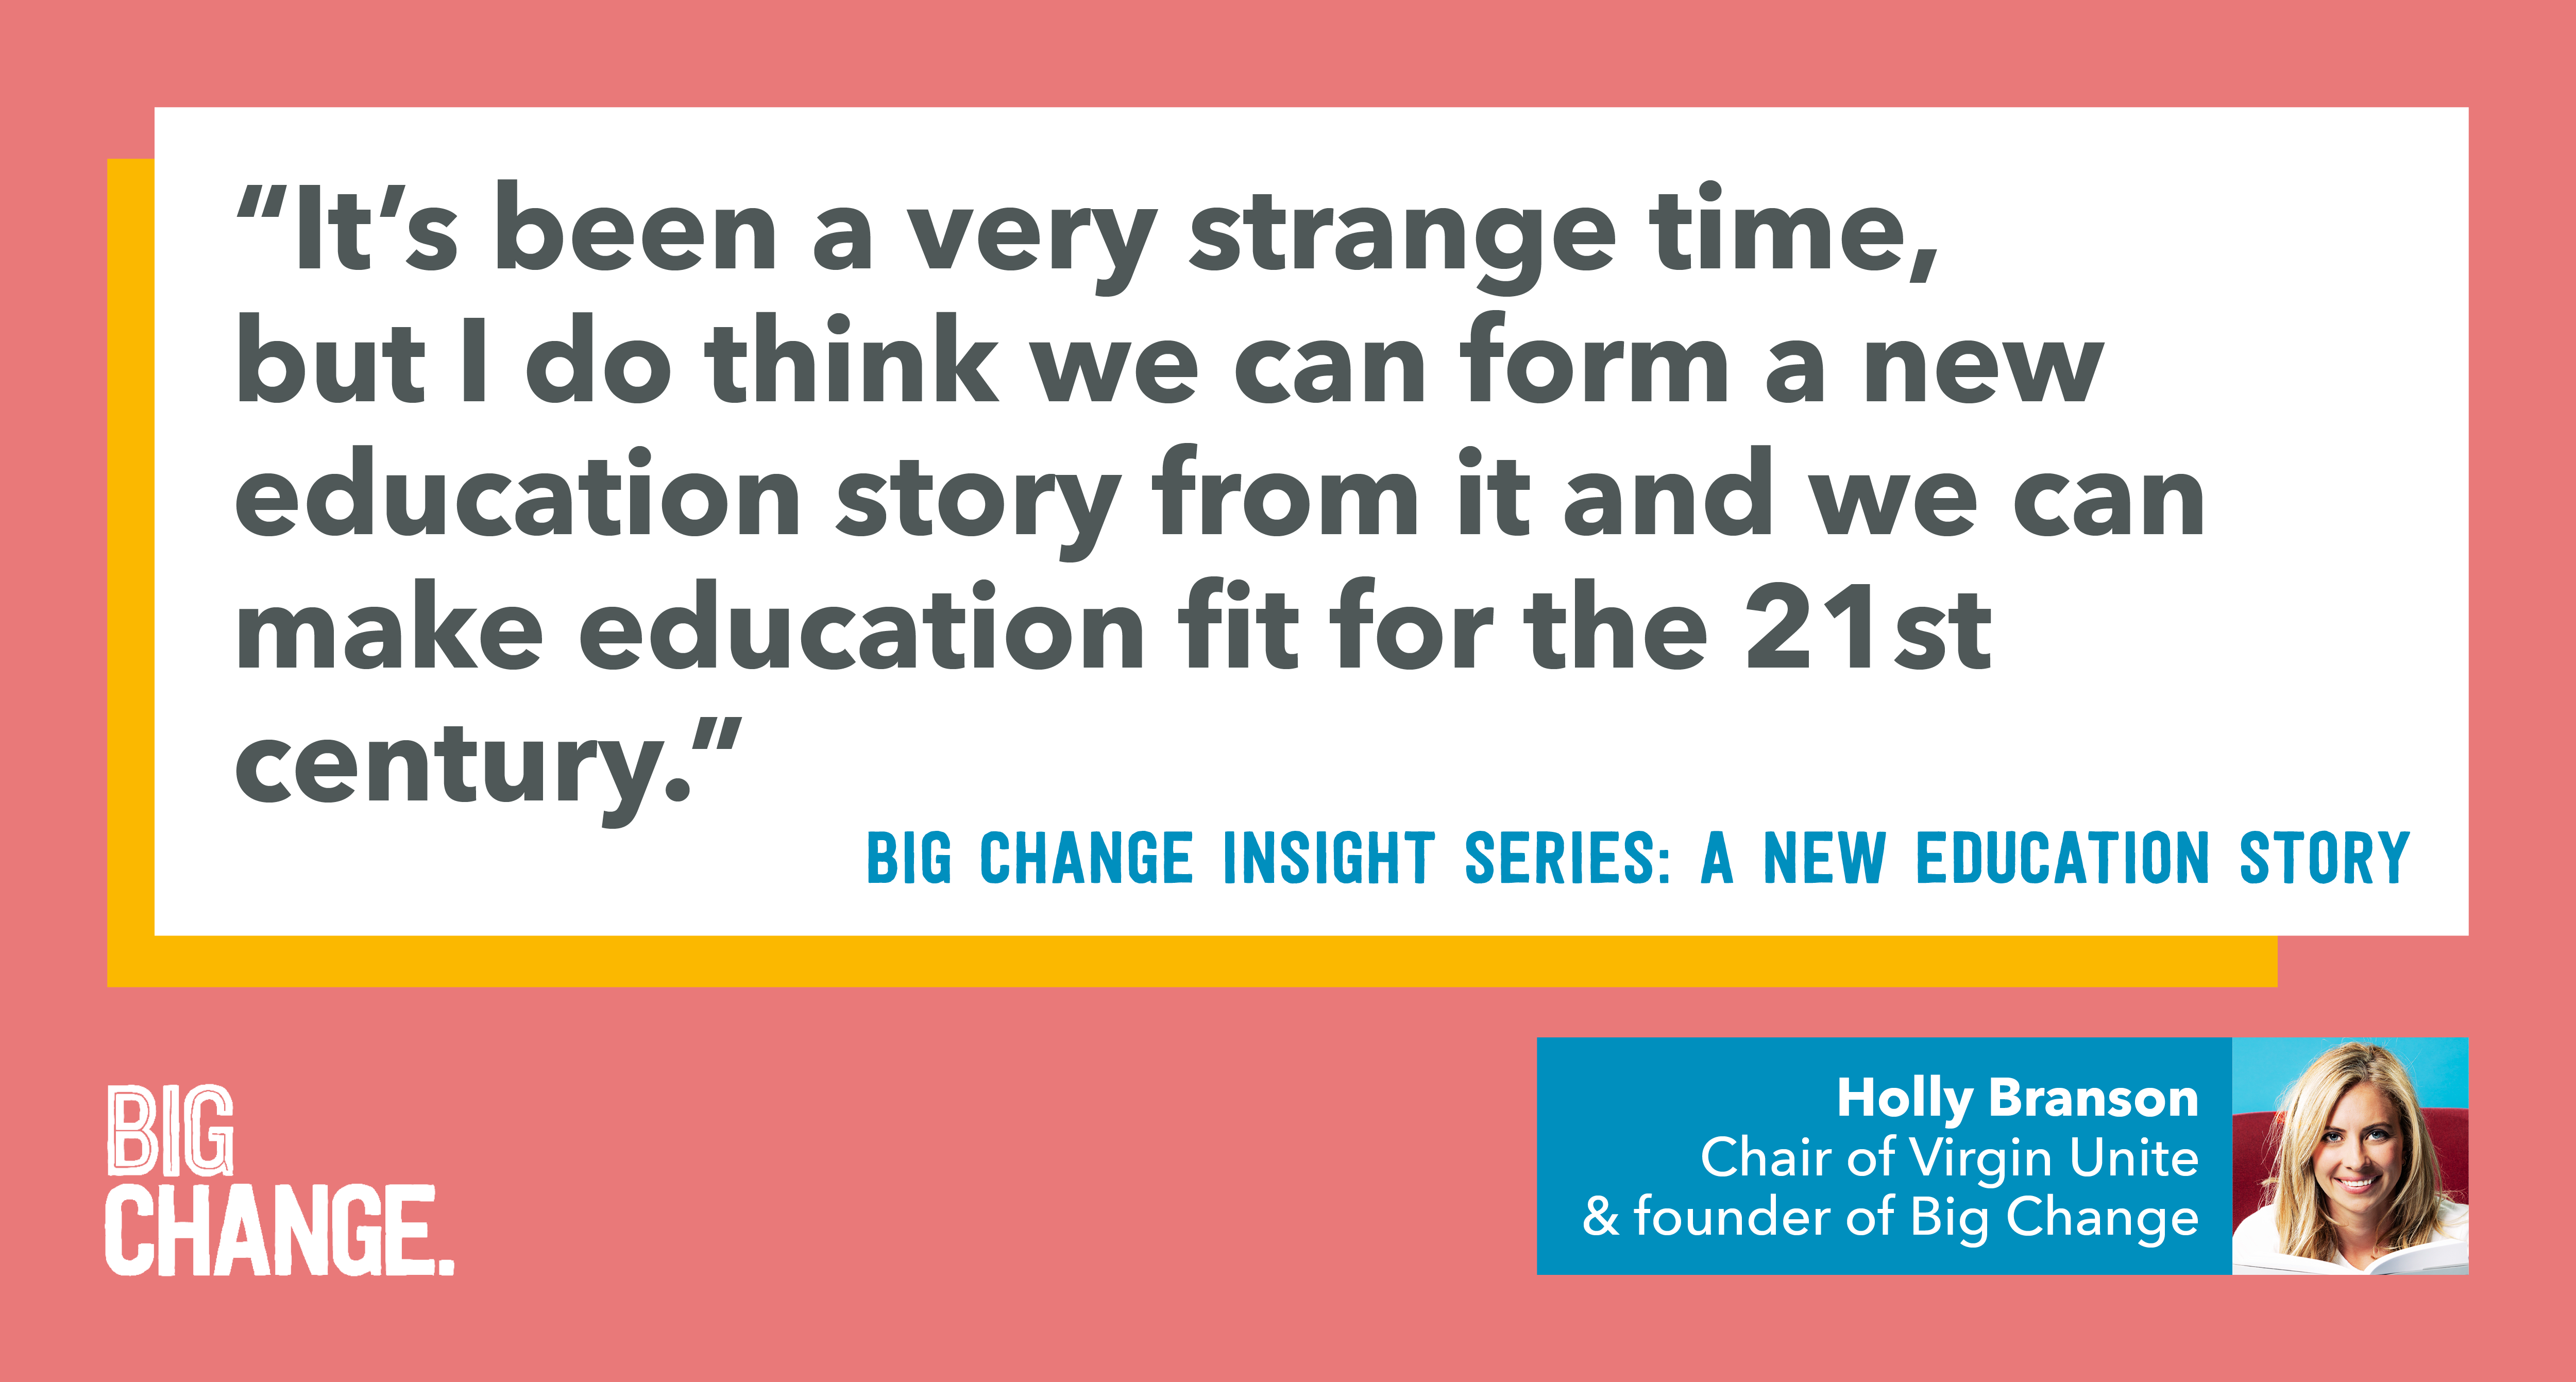 Holly Branson quote about the future of education